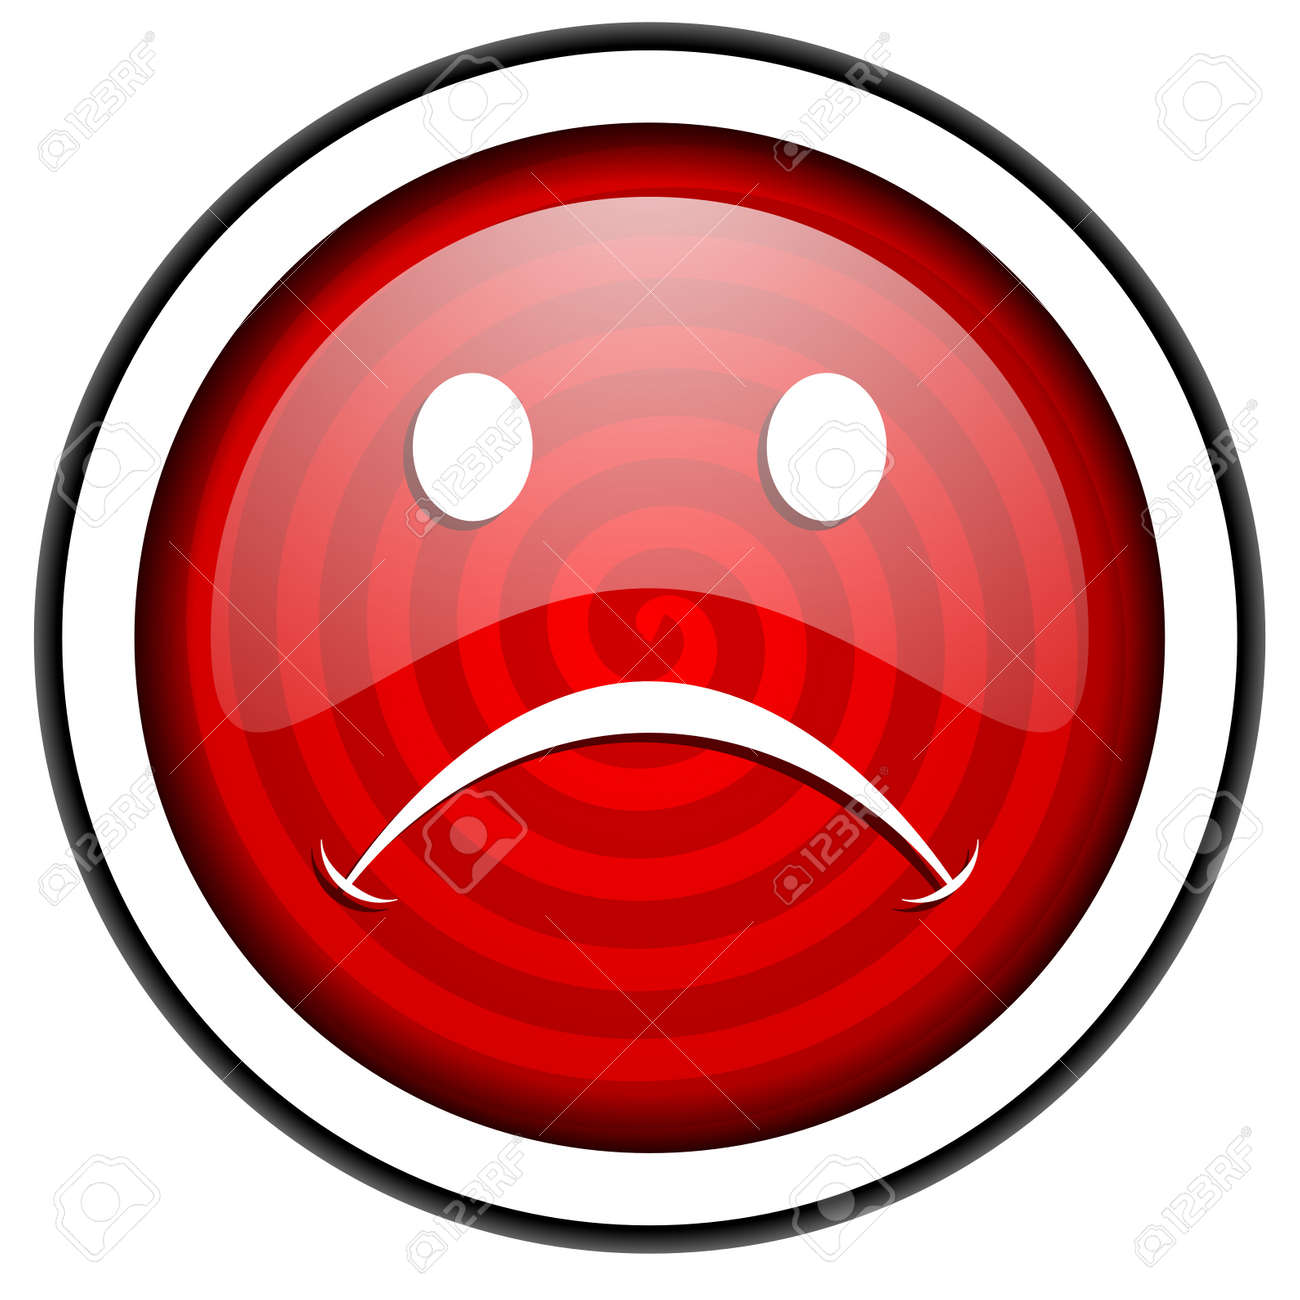 cry red glossy icon isolated on white background Stock Photo - 16975212